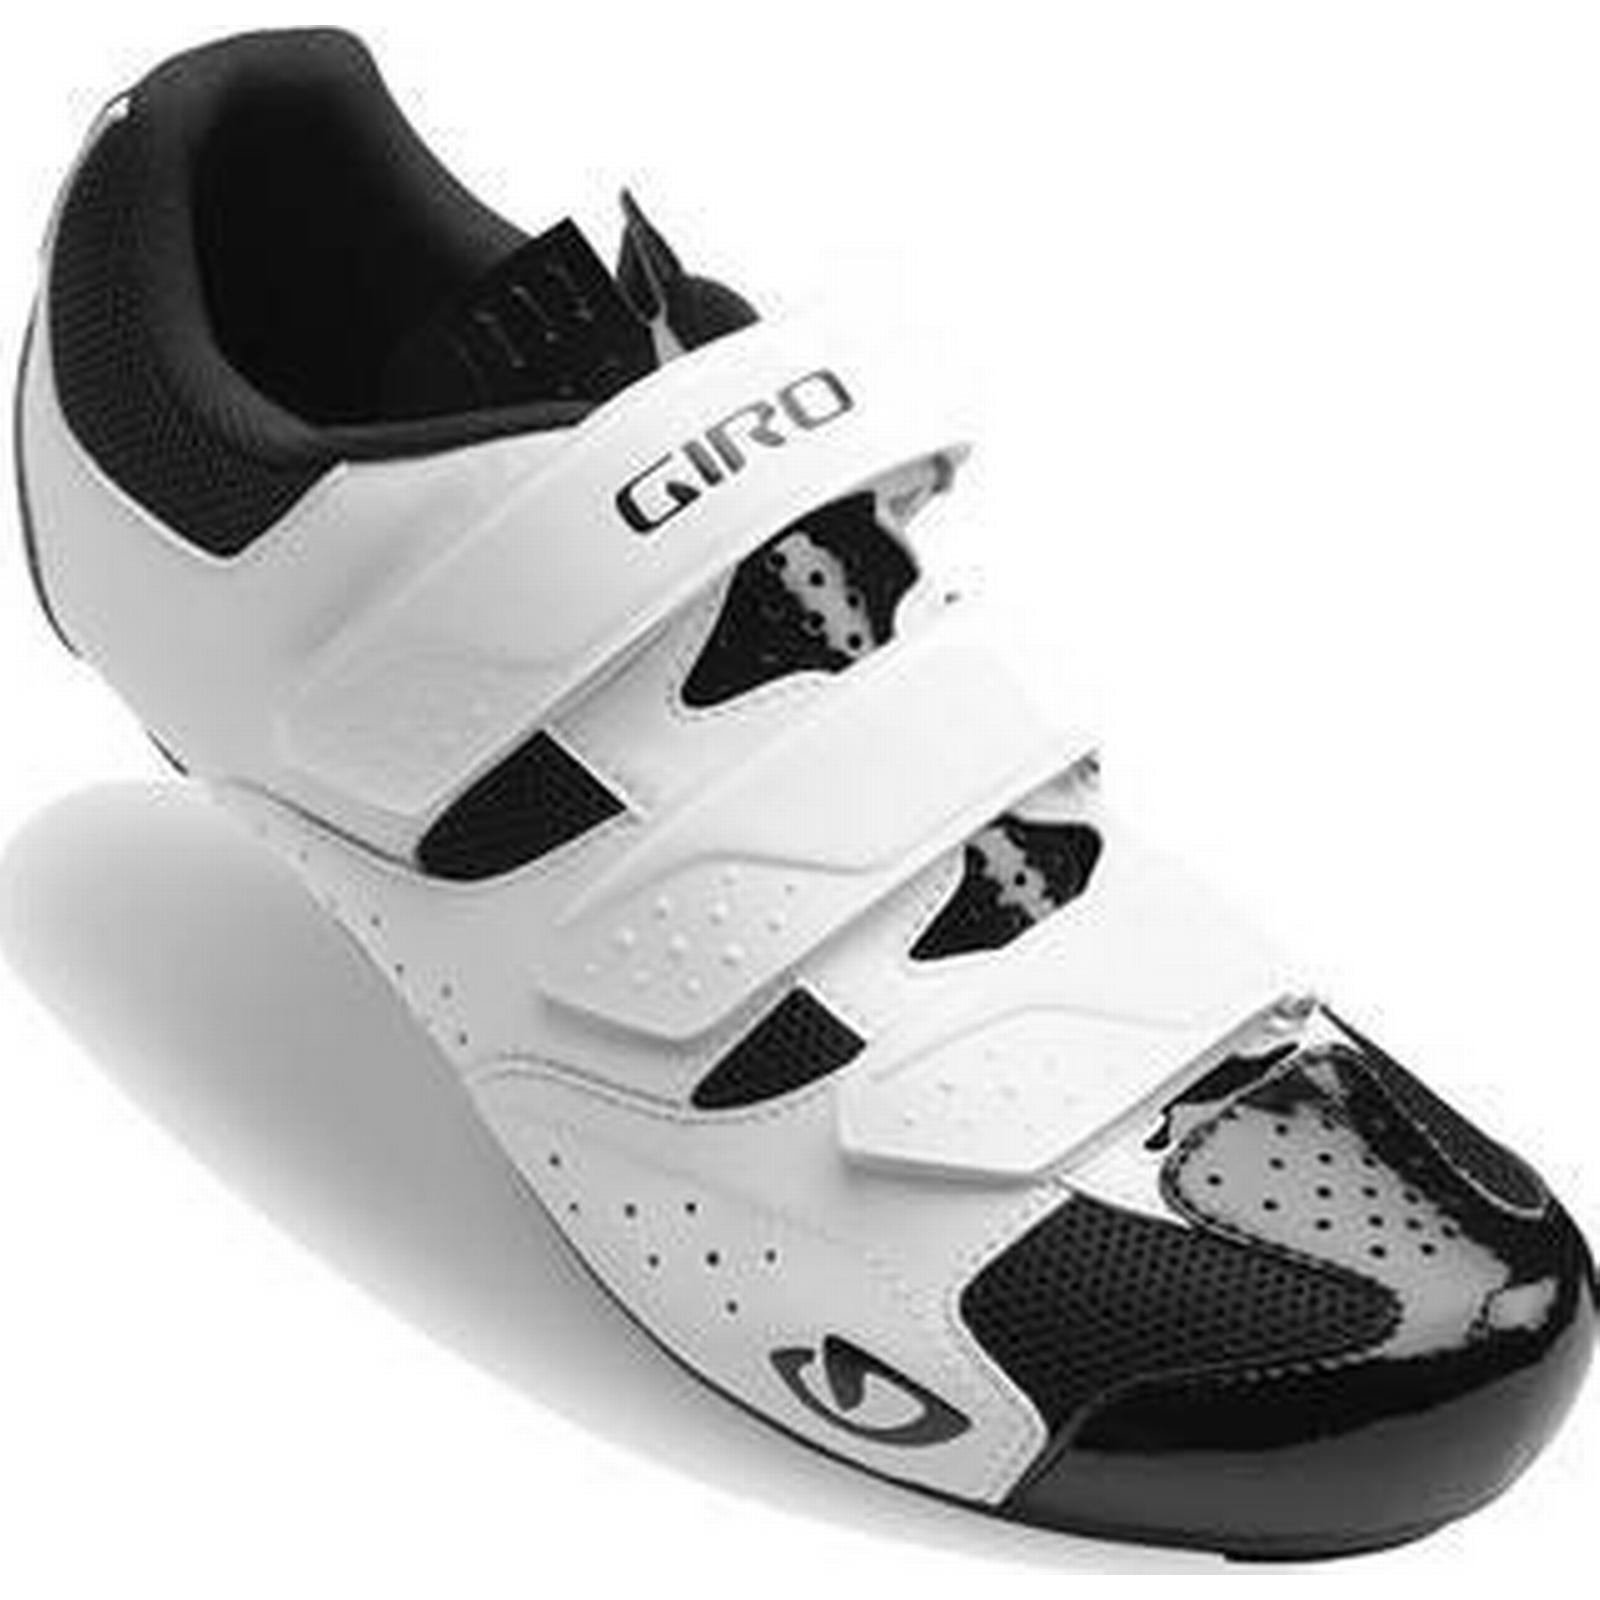 Giro | Techne Road Cycling Shoes | Giro White/Black - 40 316cc5